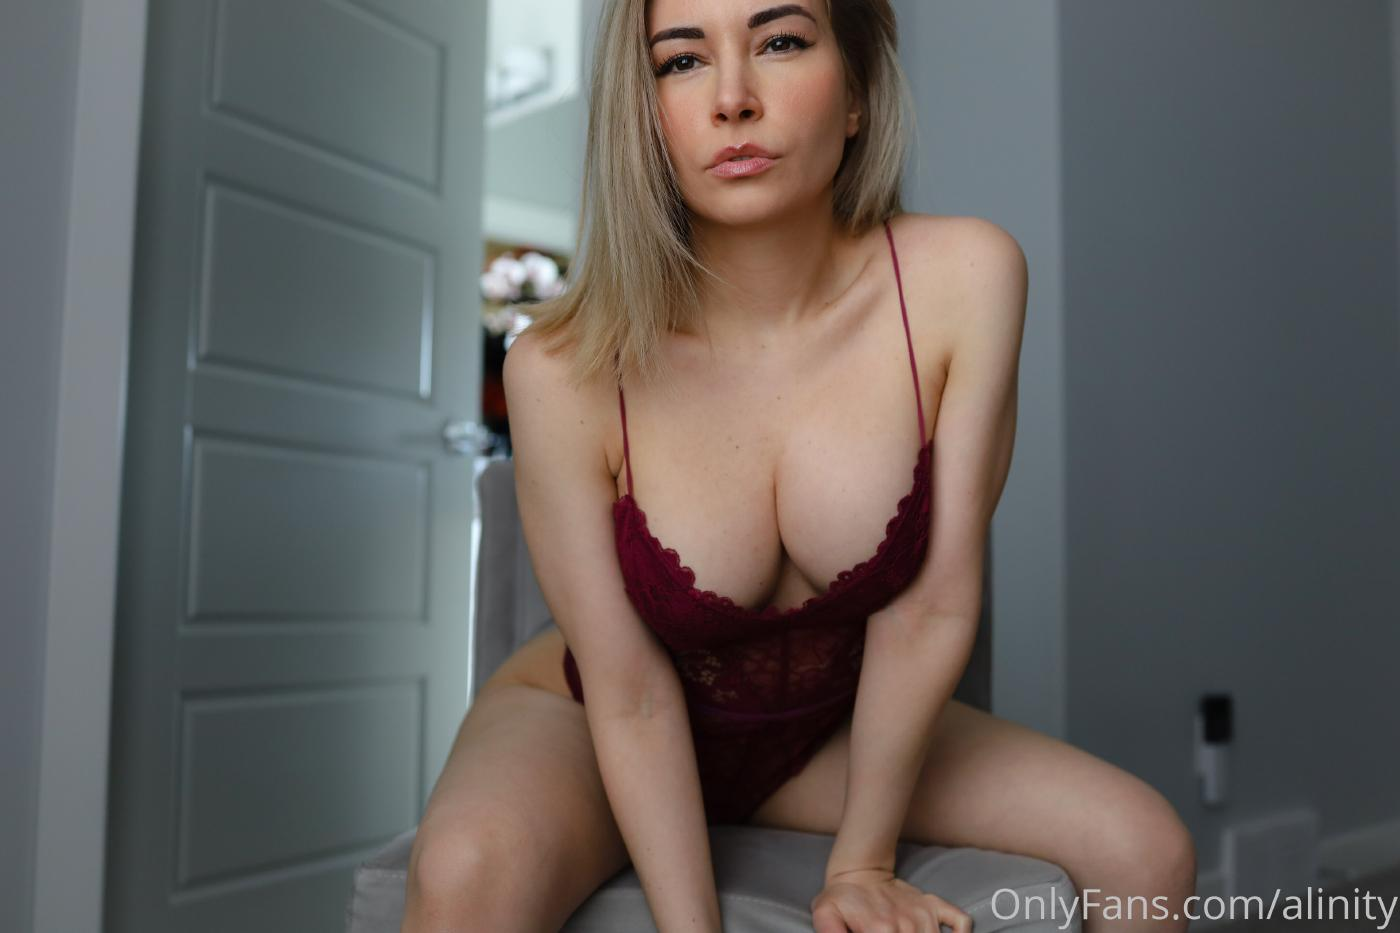 Alinity Nude Pussy Onlyfans Content Leaked 0013